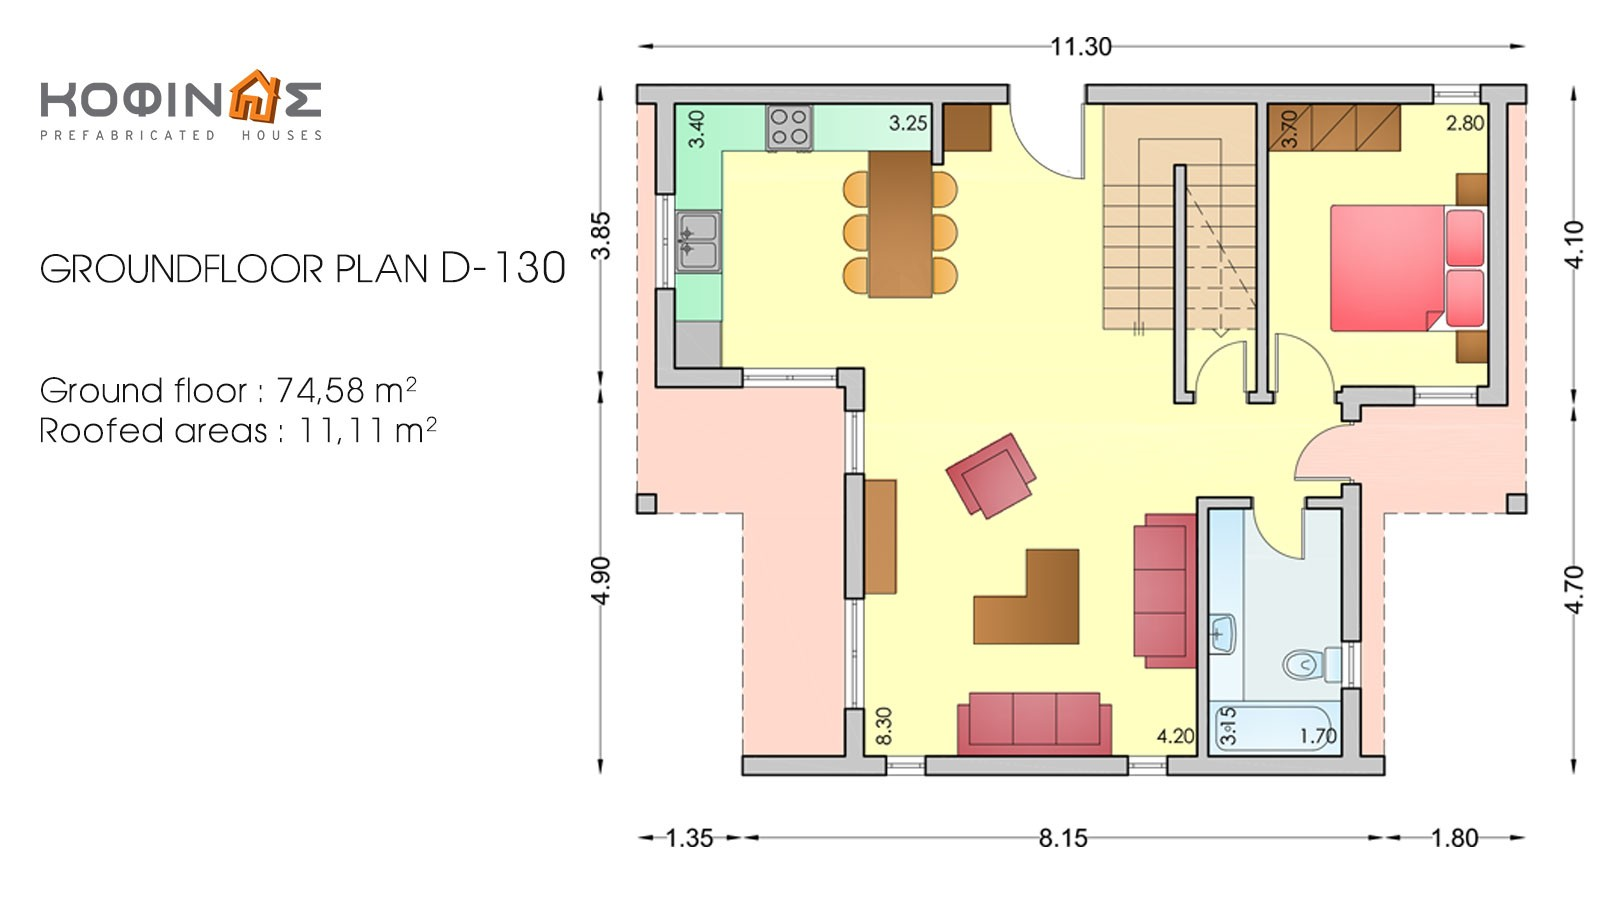 2-story house D-130, habitable space of 130,2 m²